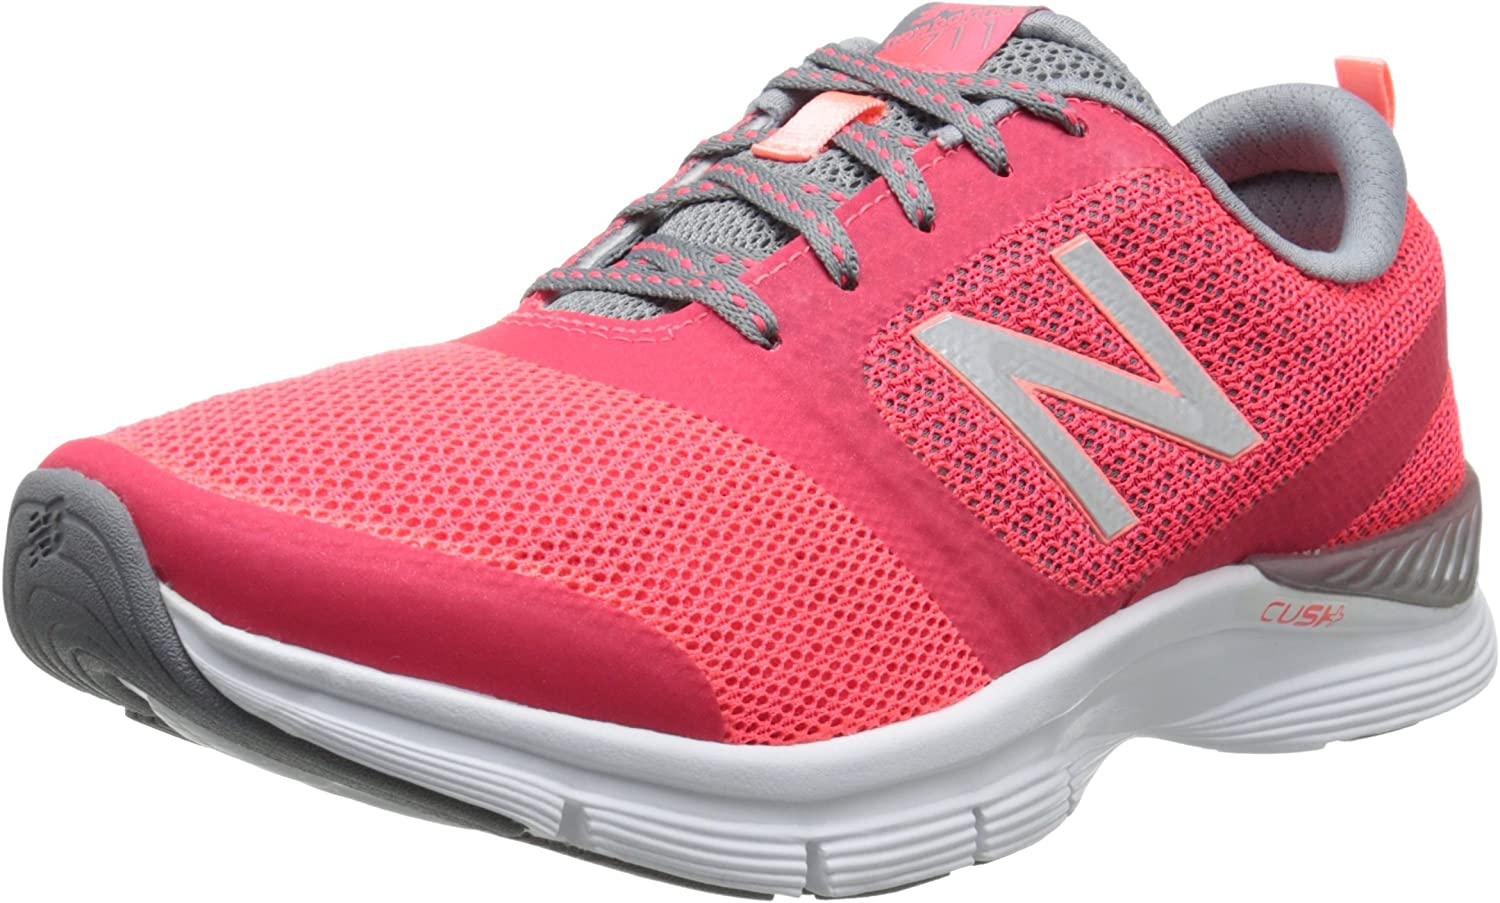 New Balance Women's 711 Mesh Cross-Training shoes Pink